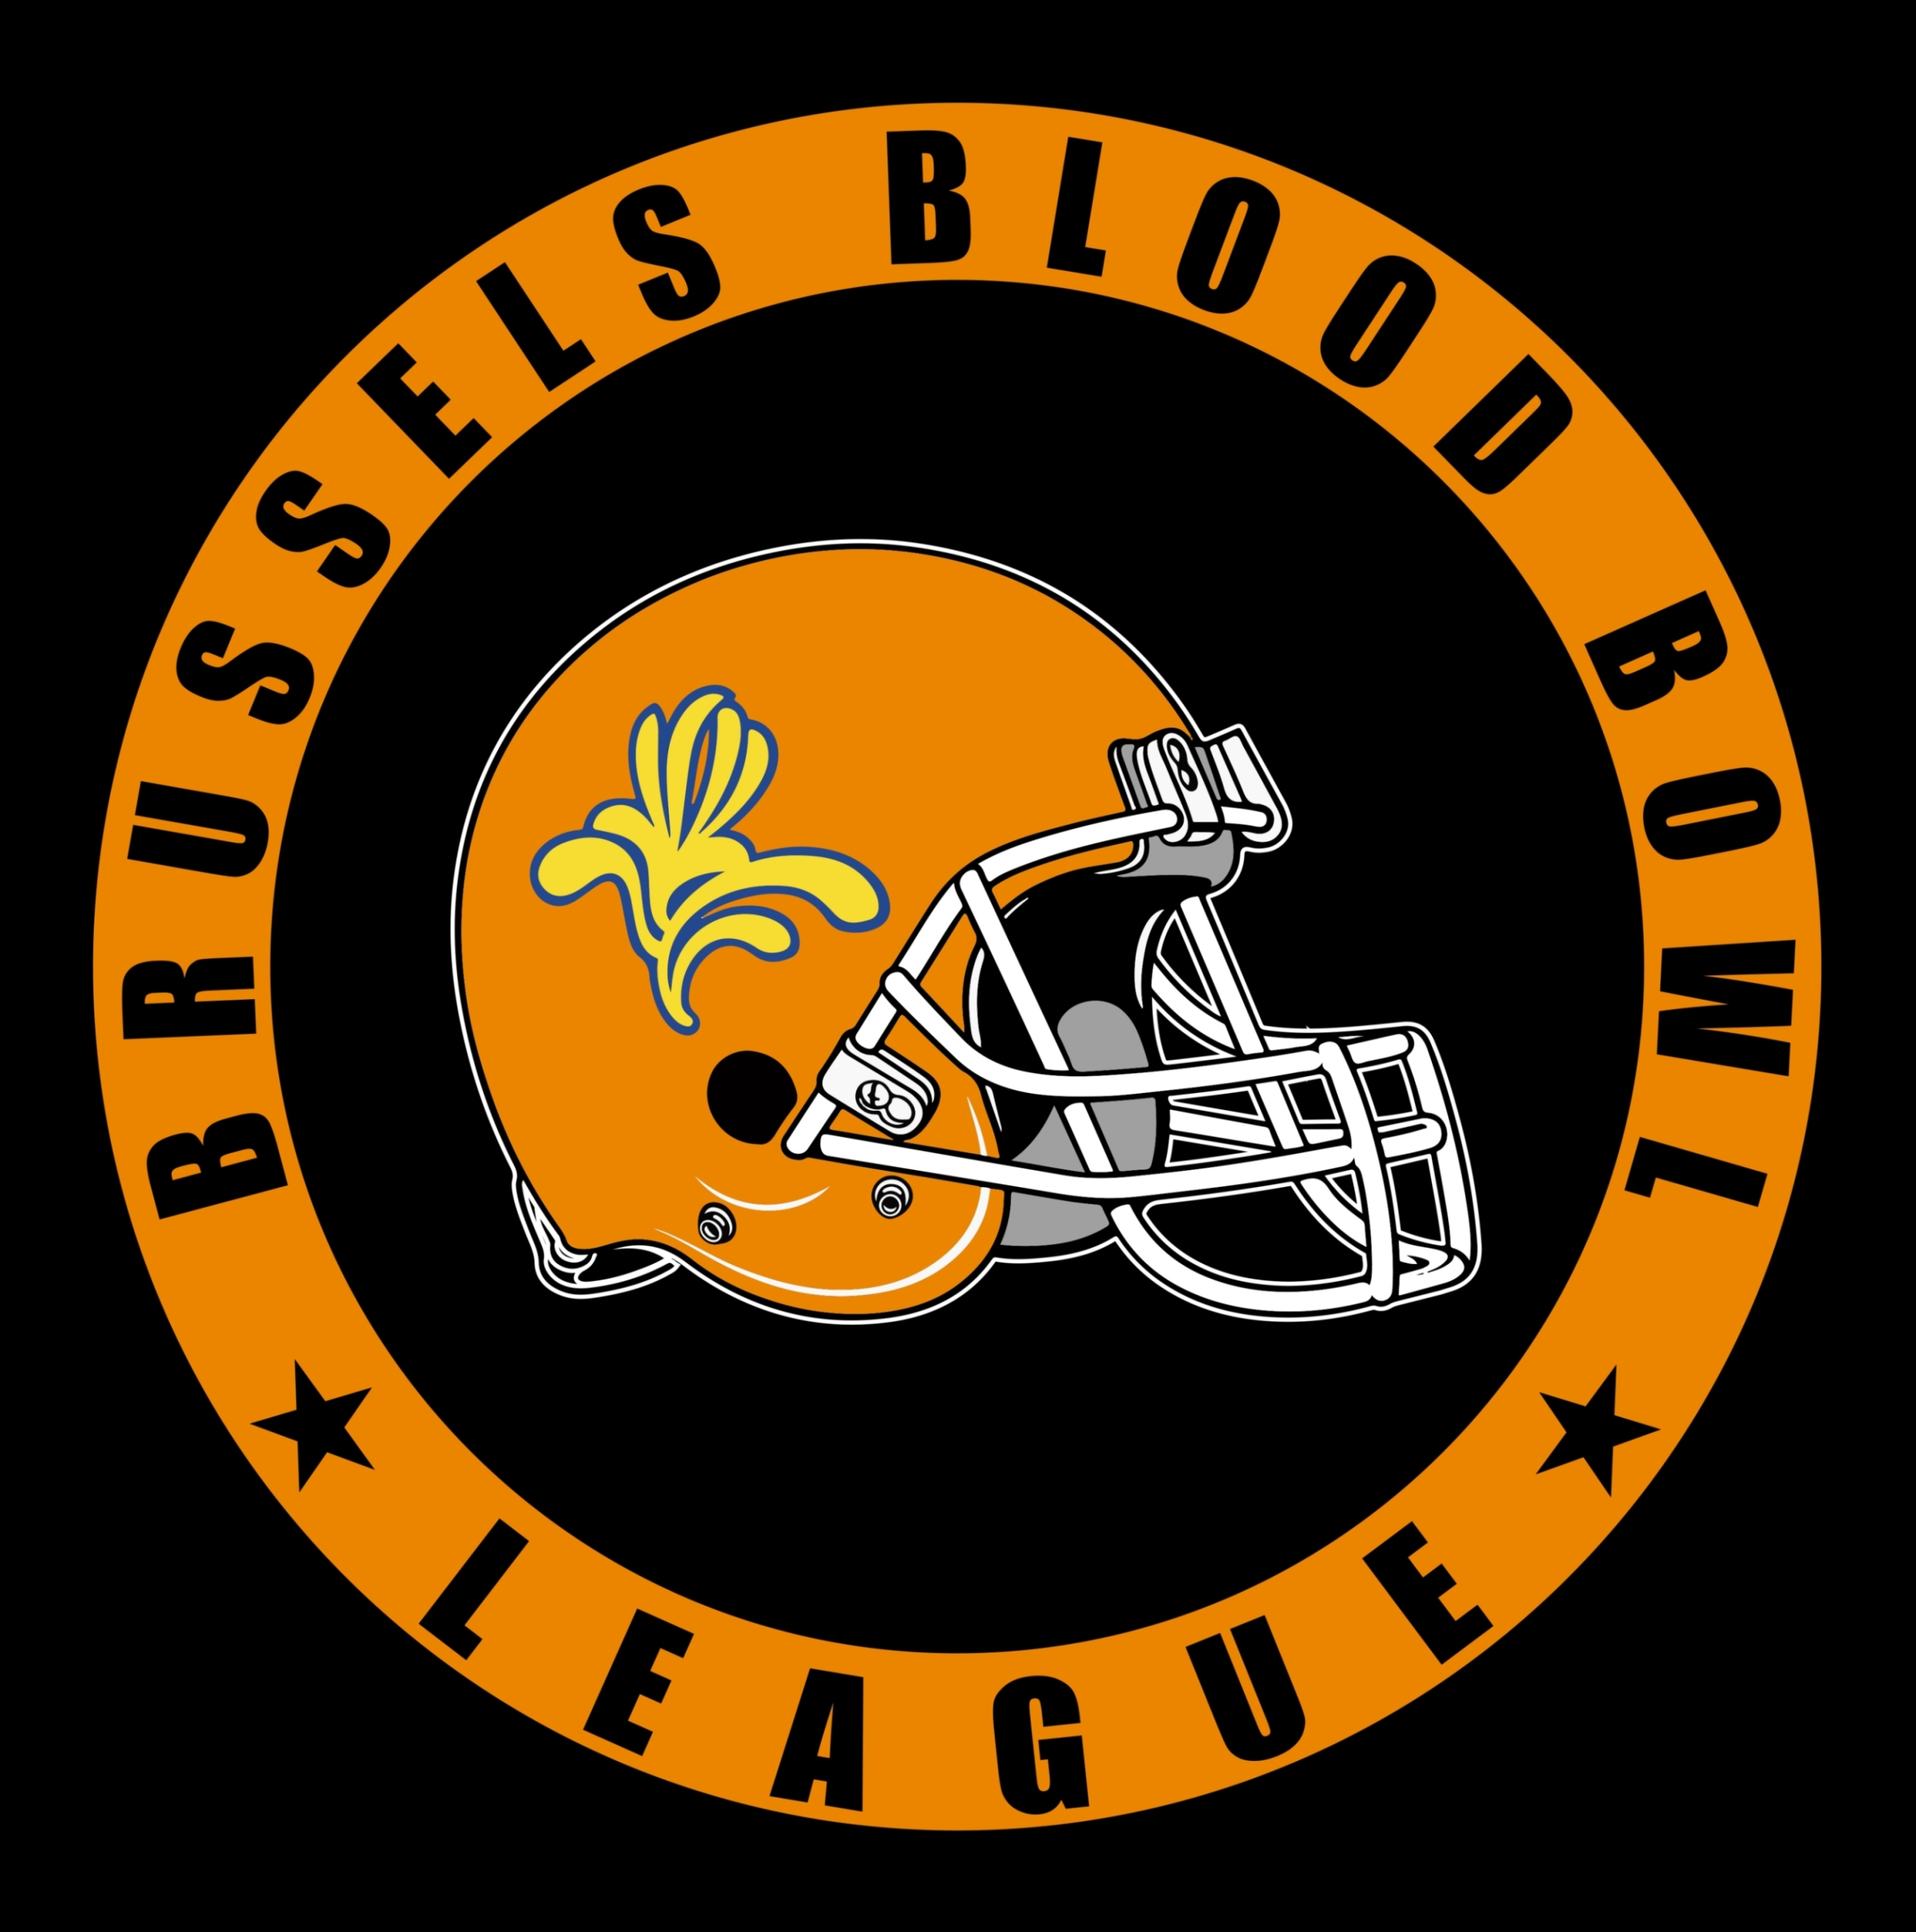 Brussels Blood Bowl League